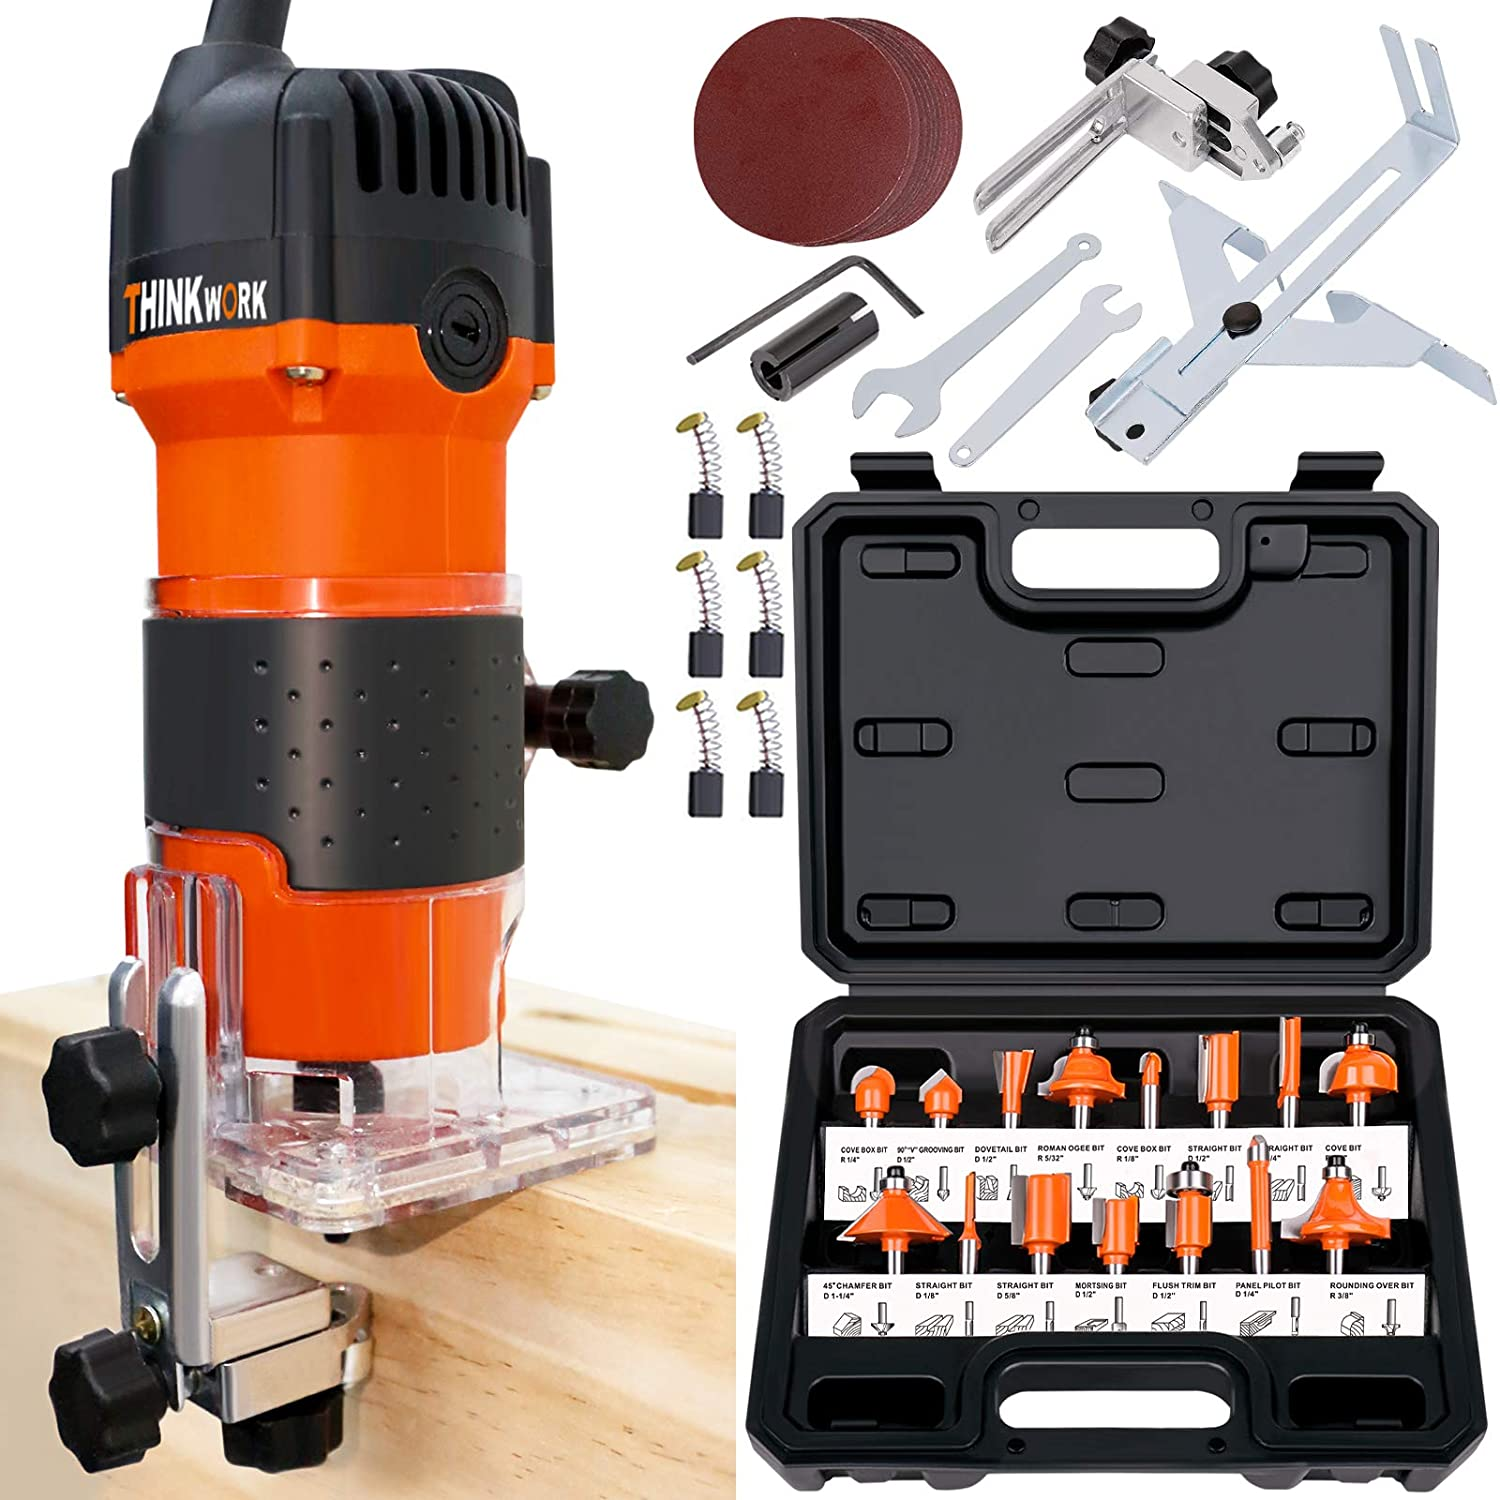 THINKWORK Compact Router, 6.5-Amp 1.25 HP Compact Wood Palm Router Tool Kit, Wood Trimmer with 15 pieces 1/4